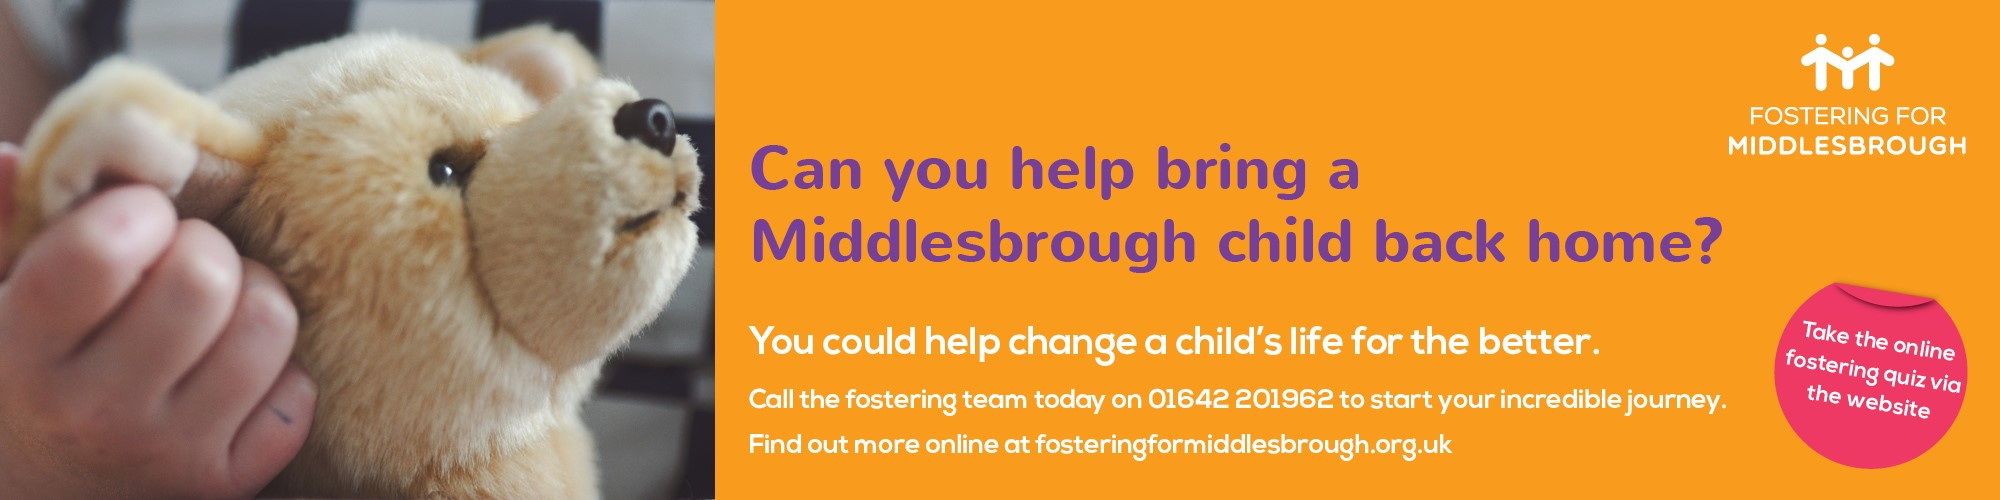 Link to the Fostering for Middlesbrough website